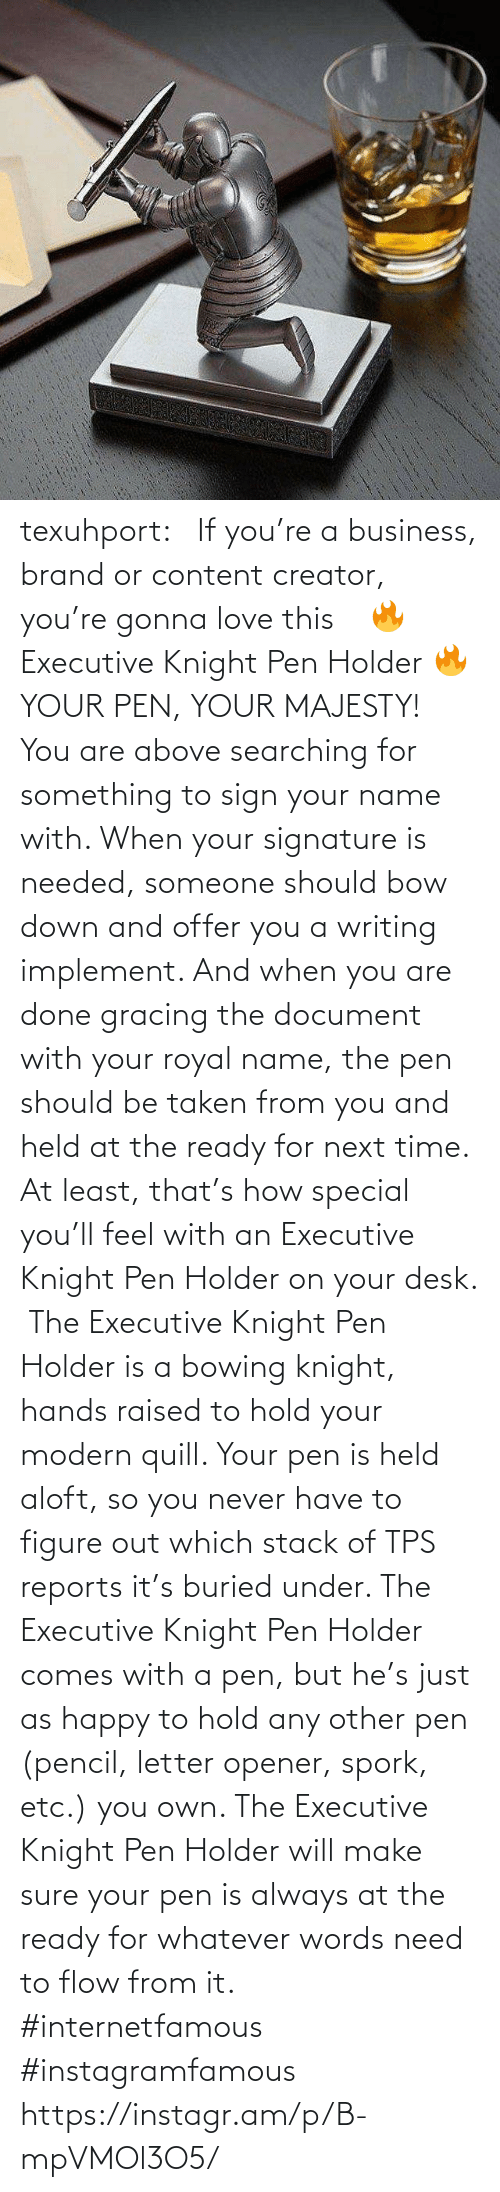 figure out: texuhport:⎆ If you're a business, brand or content creator, you're gonna love this ⎆⁣ 🔥 Executive Knight Pen Holder 🔥⁣ YOUR PEN, YOUR MAJESTY!⁣ ⁣ You are above searching for something to sign your name with. When your signature is needed, someone should bow down and offer you a writing implement. And when you are done gracing the document with your royal name, the pen should be taken from you and held at the ready for next time. At least, that's how special you'll feel with an Executive Knight Pen Holder on your desk.⁣ ⁣ The Executive Knight Pen Holder is a bowing knight, hands raised to hold your modern quill. Your pen is held aloft, so you never have to figure out which stack of TPS reports it's buried under. The Executive Knight Pen Holder comes with a pen, but he's just as happy to hold any other pen (pencil, letter opener, spork, etc.) you own. The Executive Knight Pen Holder will make sure your pen is always at the ready for whatever words need to flow from it.⁣ #internetfamous  #instagramfamous https://instagr.am/p/B-mpVMOl3O5/